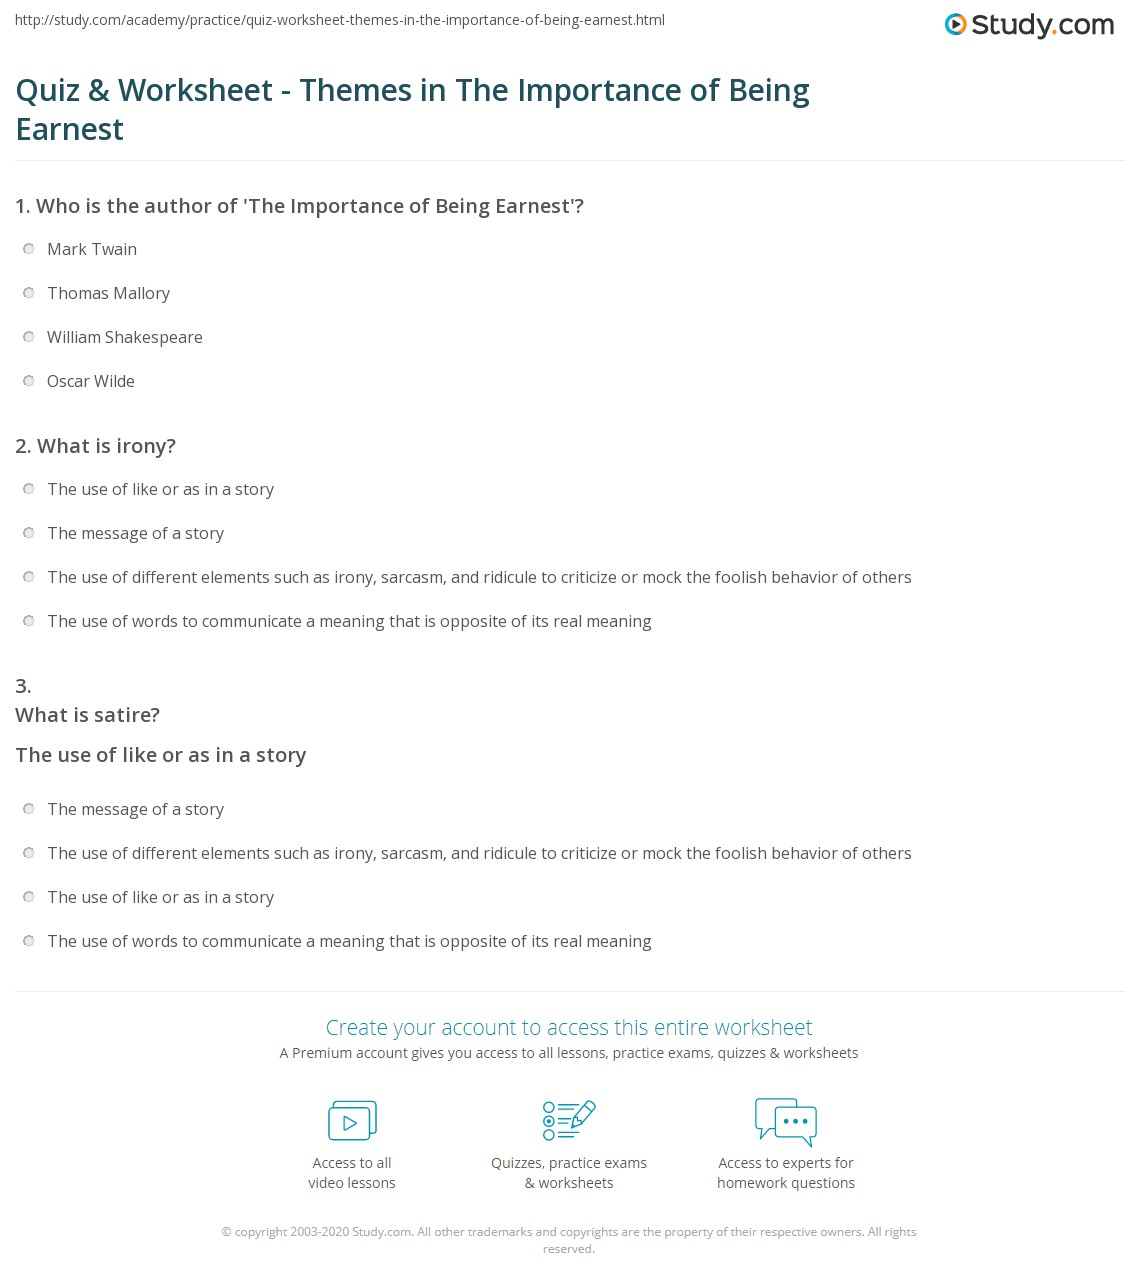 the importance of being earnest essays of essays the importance of  quiz worksheet themes in the importance of being earnest print the importance of being earnest irony